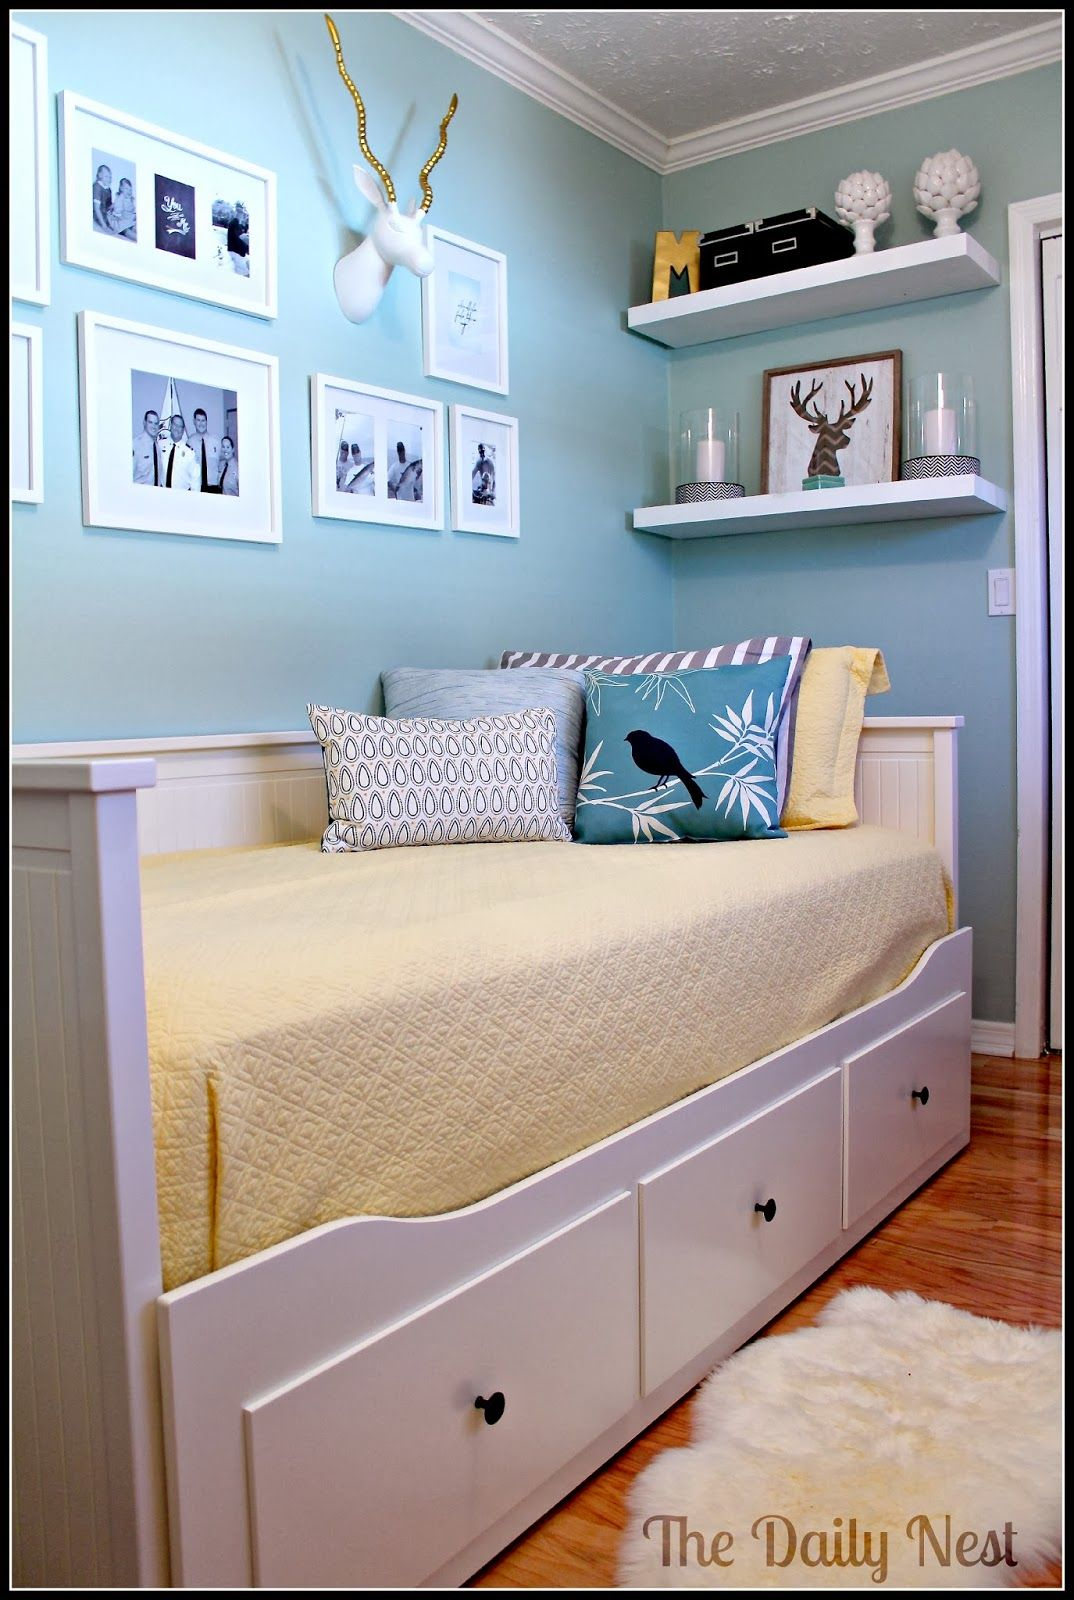 Best Kitchen Gallery: Feature Friday The Daily Nest Hemnes Empty And Nest of Ikea Small Guest Bedroom on rachelxblog.com